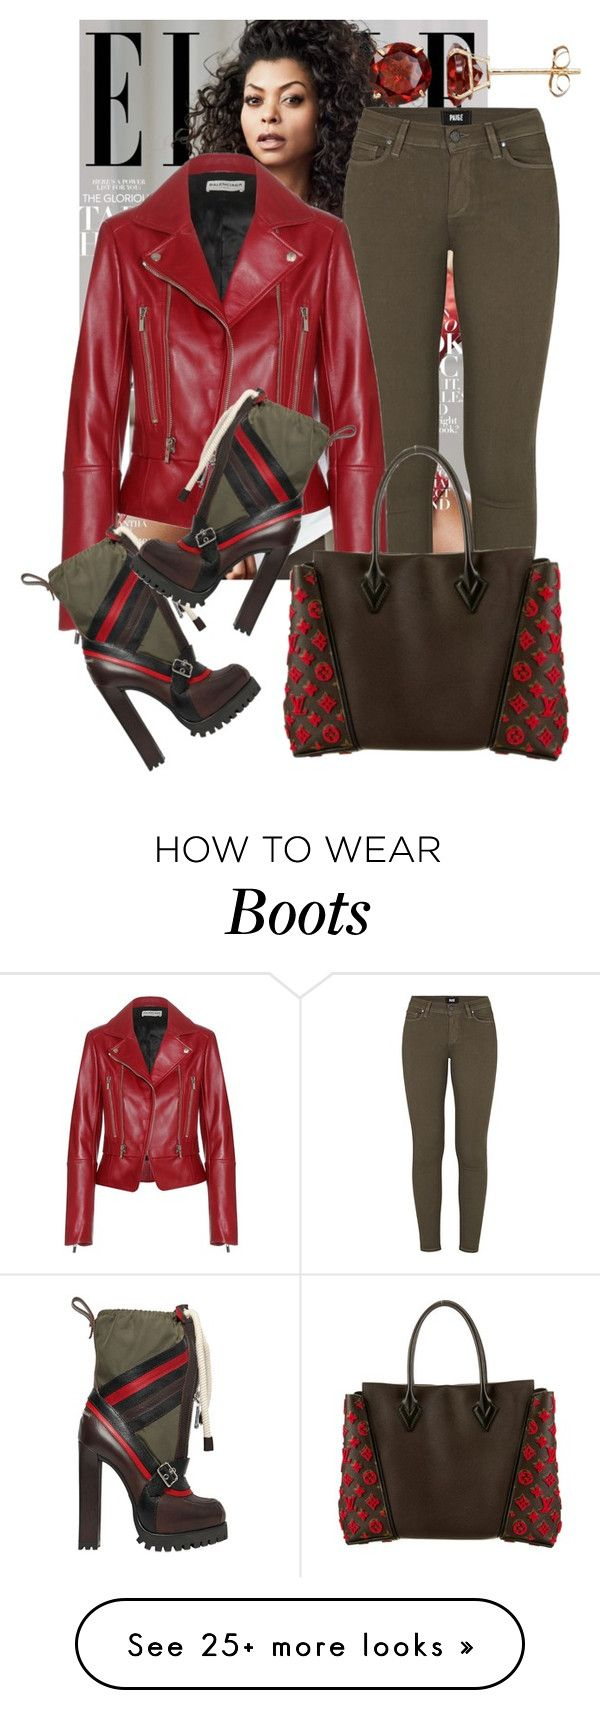 """Boots & Bag"" by perichaze on Polyvore featuring Paige Denim, Balenciaga, Dsquared2, Louis Vuitton, Everlasting Gold, women's clothing, women's fashion, women, female and woman"